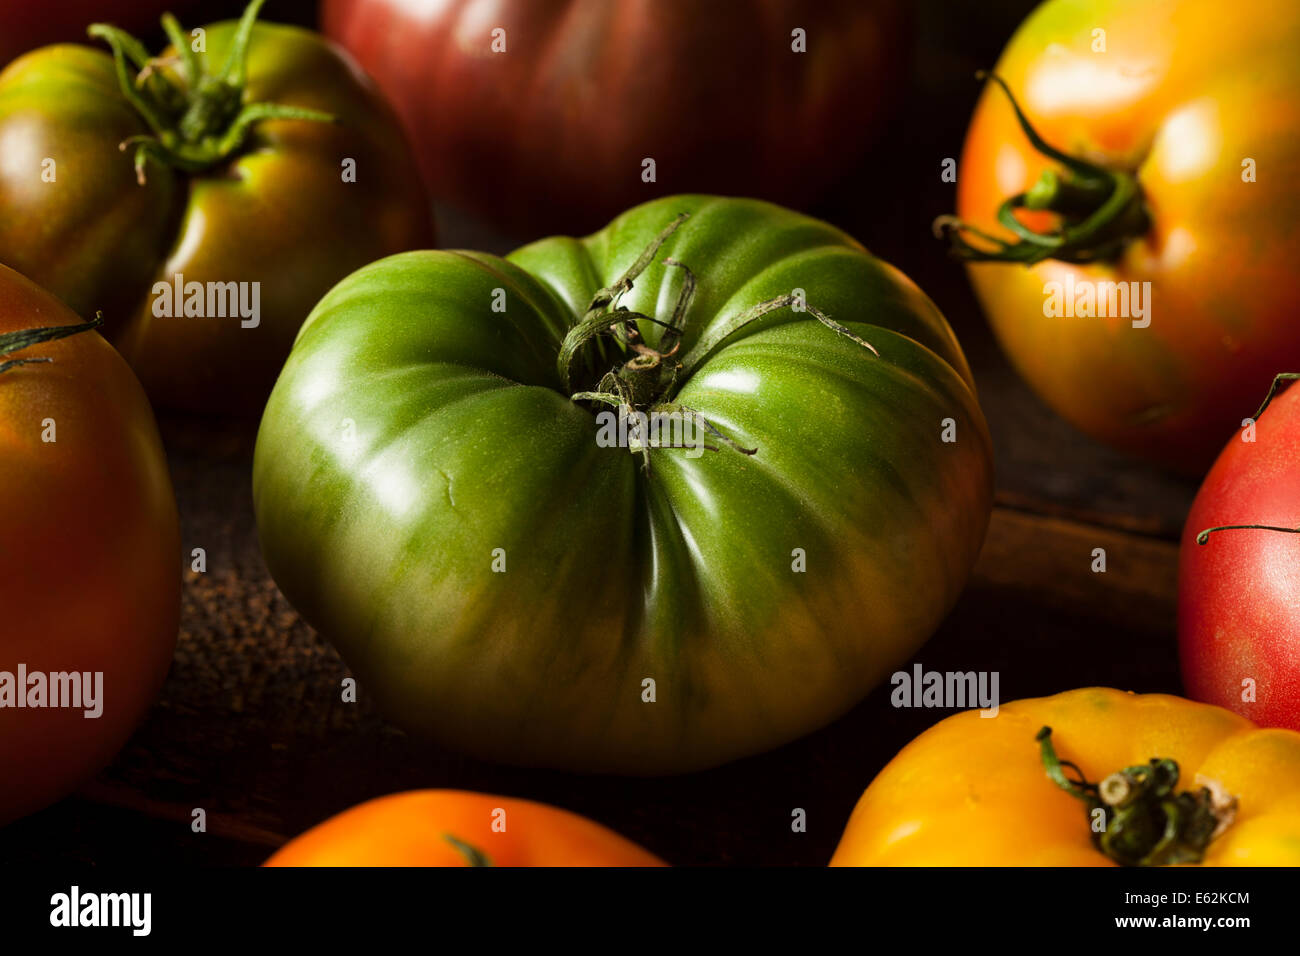 Colorful Organic Heirloom Tomatoes Fresh from the Garden Stock Photo